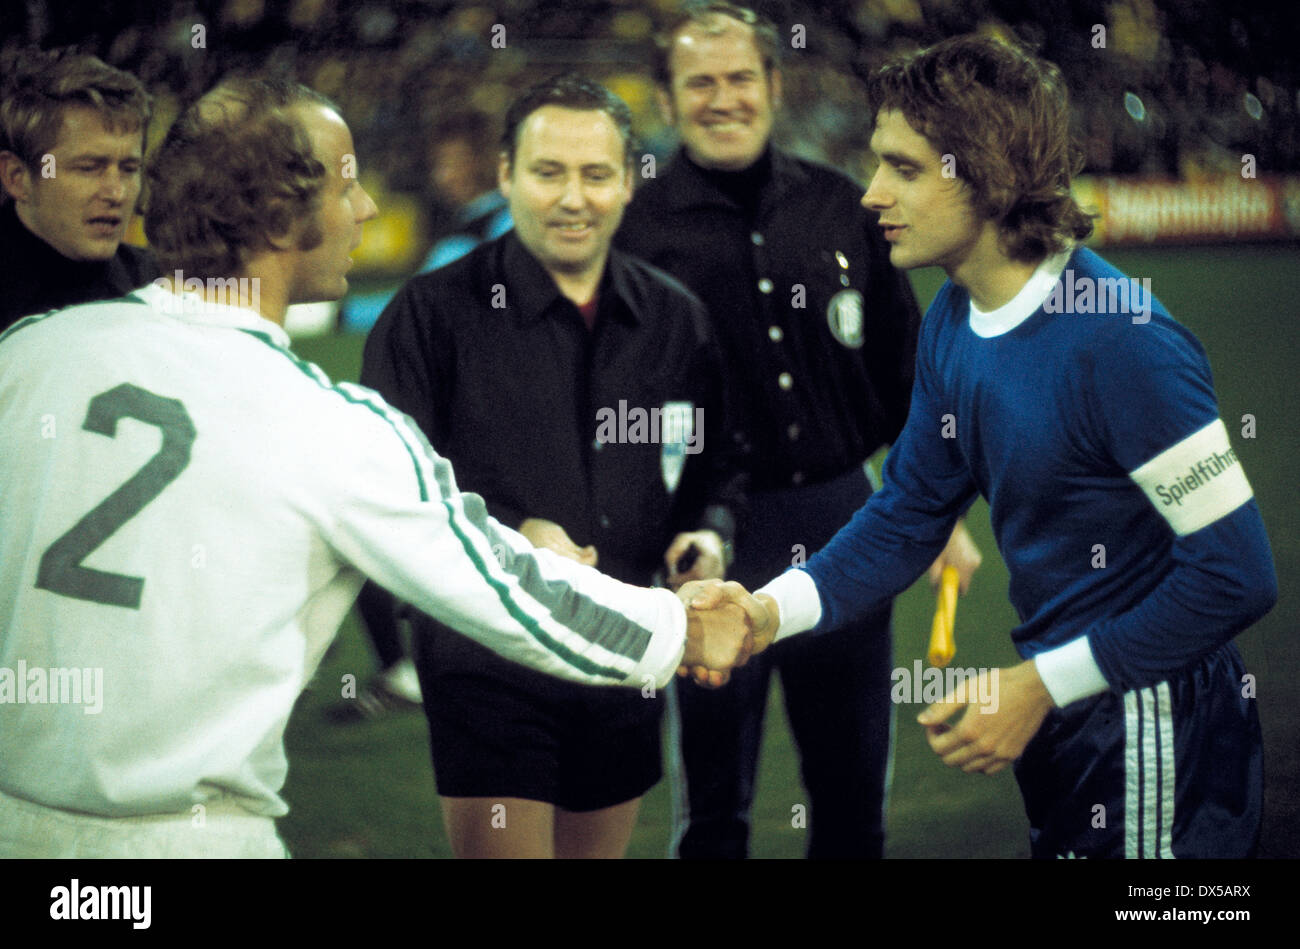 football, Bundesliga, 1974/1975, Stadium am Boekelberg, Borussia Moenchengladbach versus FC Schalke 04 1:0, welcome of the team leaders Berti Vogts (MG) left and Helmut Kremers (S04), behind referee Karl Riegg and assistants - Stock Image